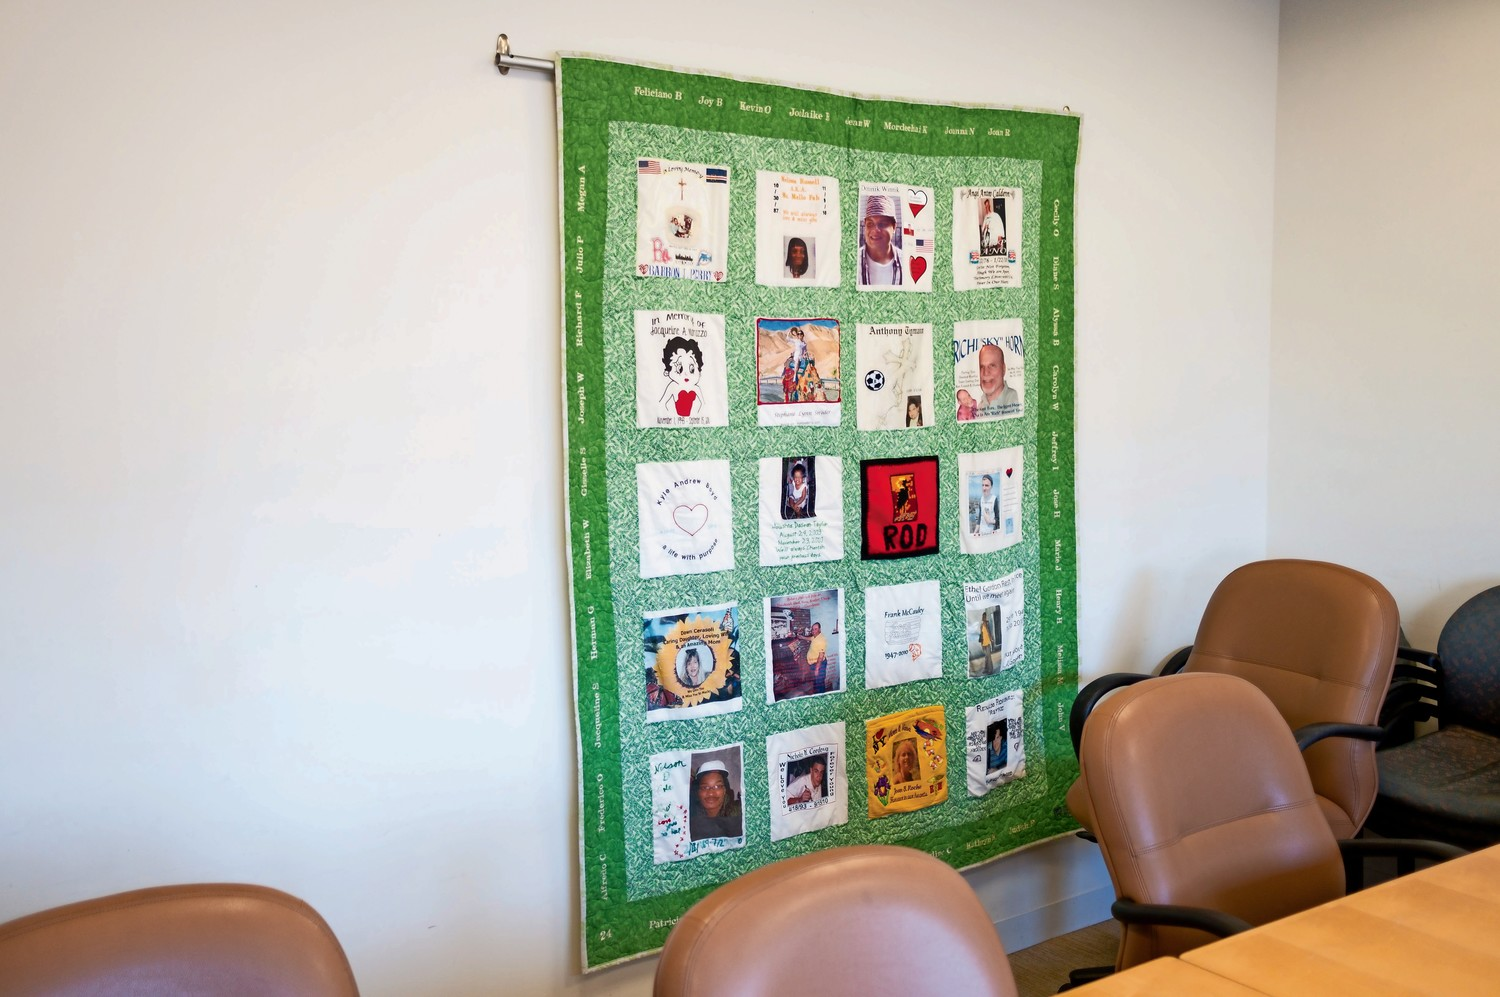 Quilts featuring the stories of organ donors hang through the office space of LiveOnNY, a nonprofit dedicated to facilitating organ donations. The minimum age required to be an organ donor was recently lowered from 18 to 16.